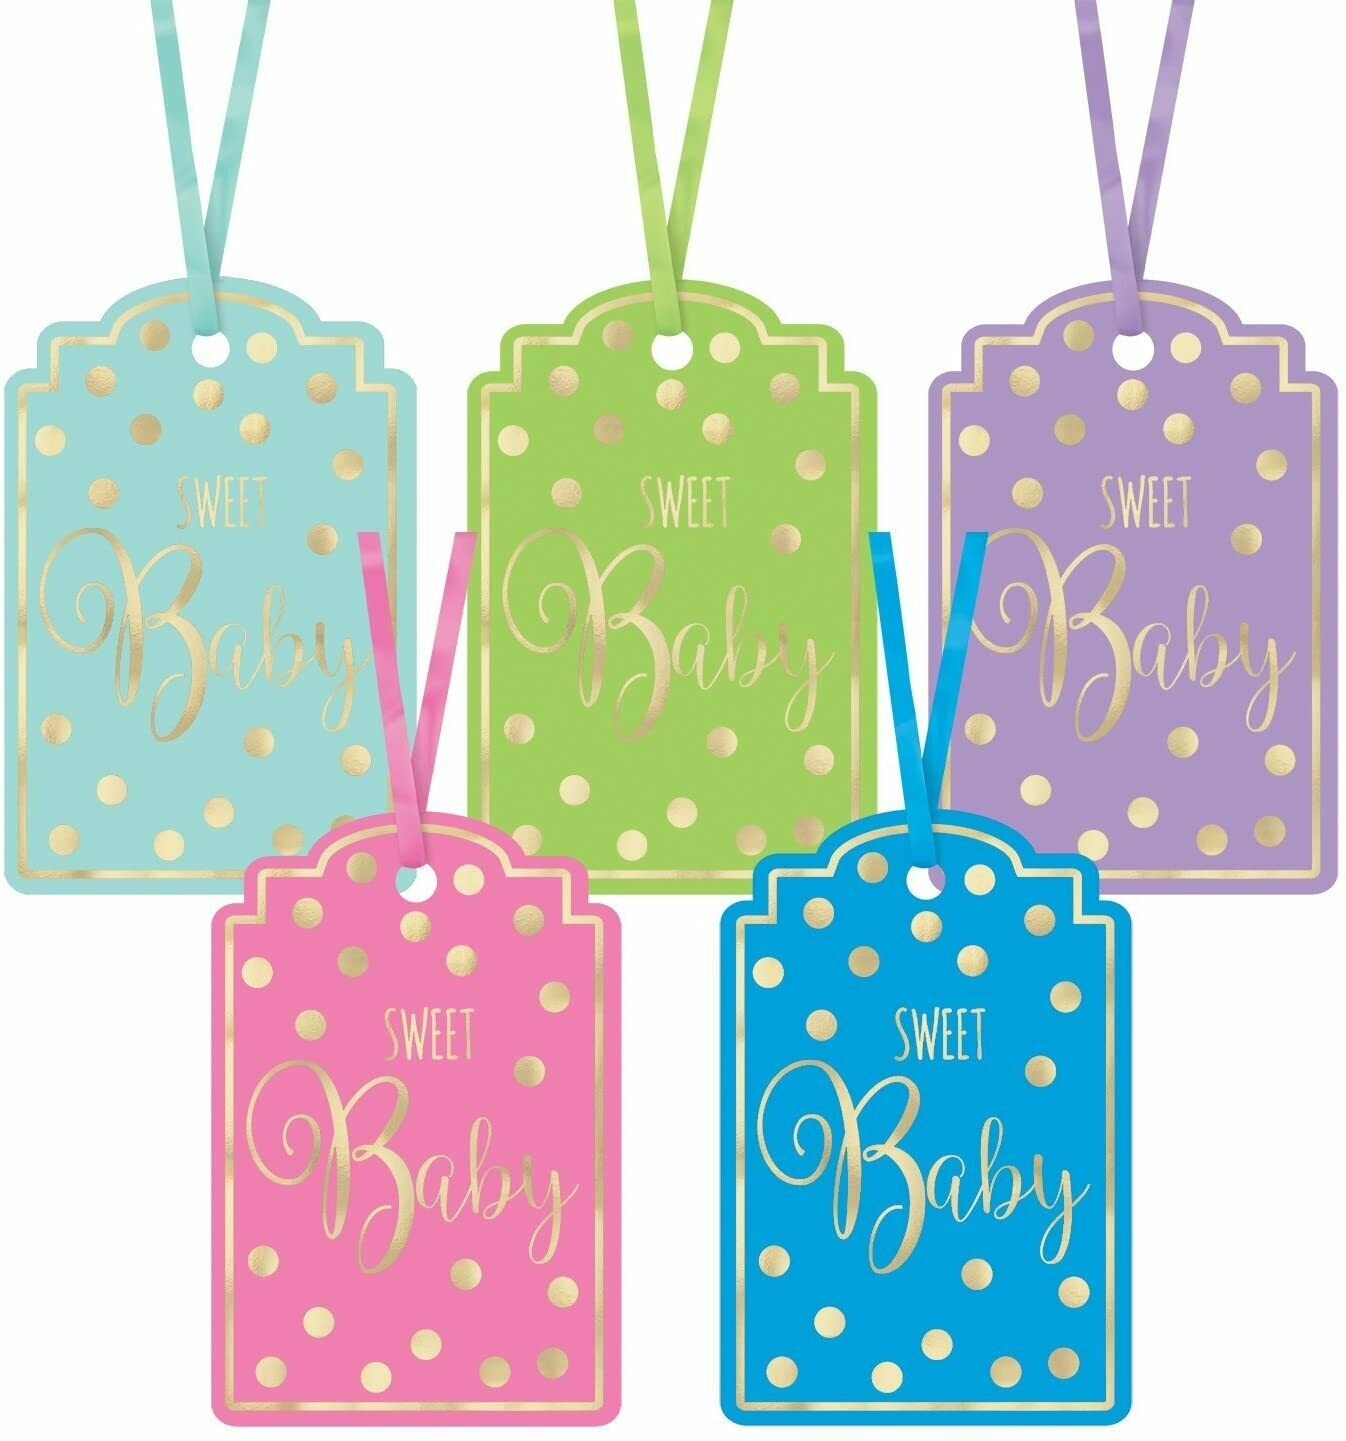 Sweet Baby Tags 25ct